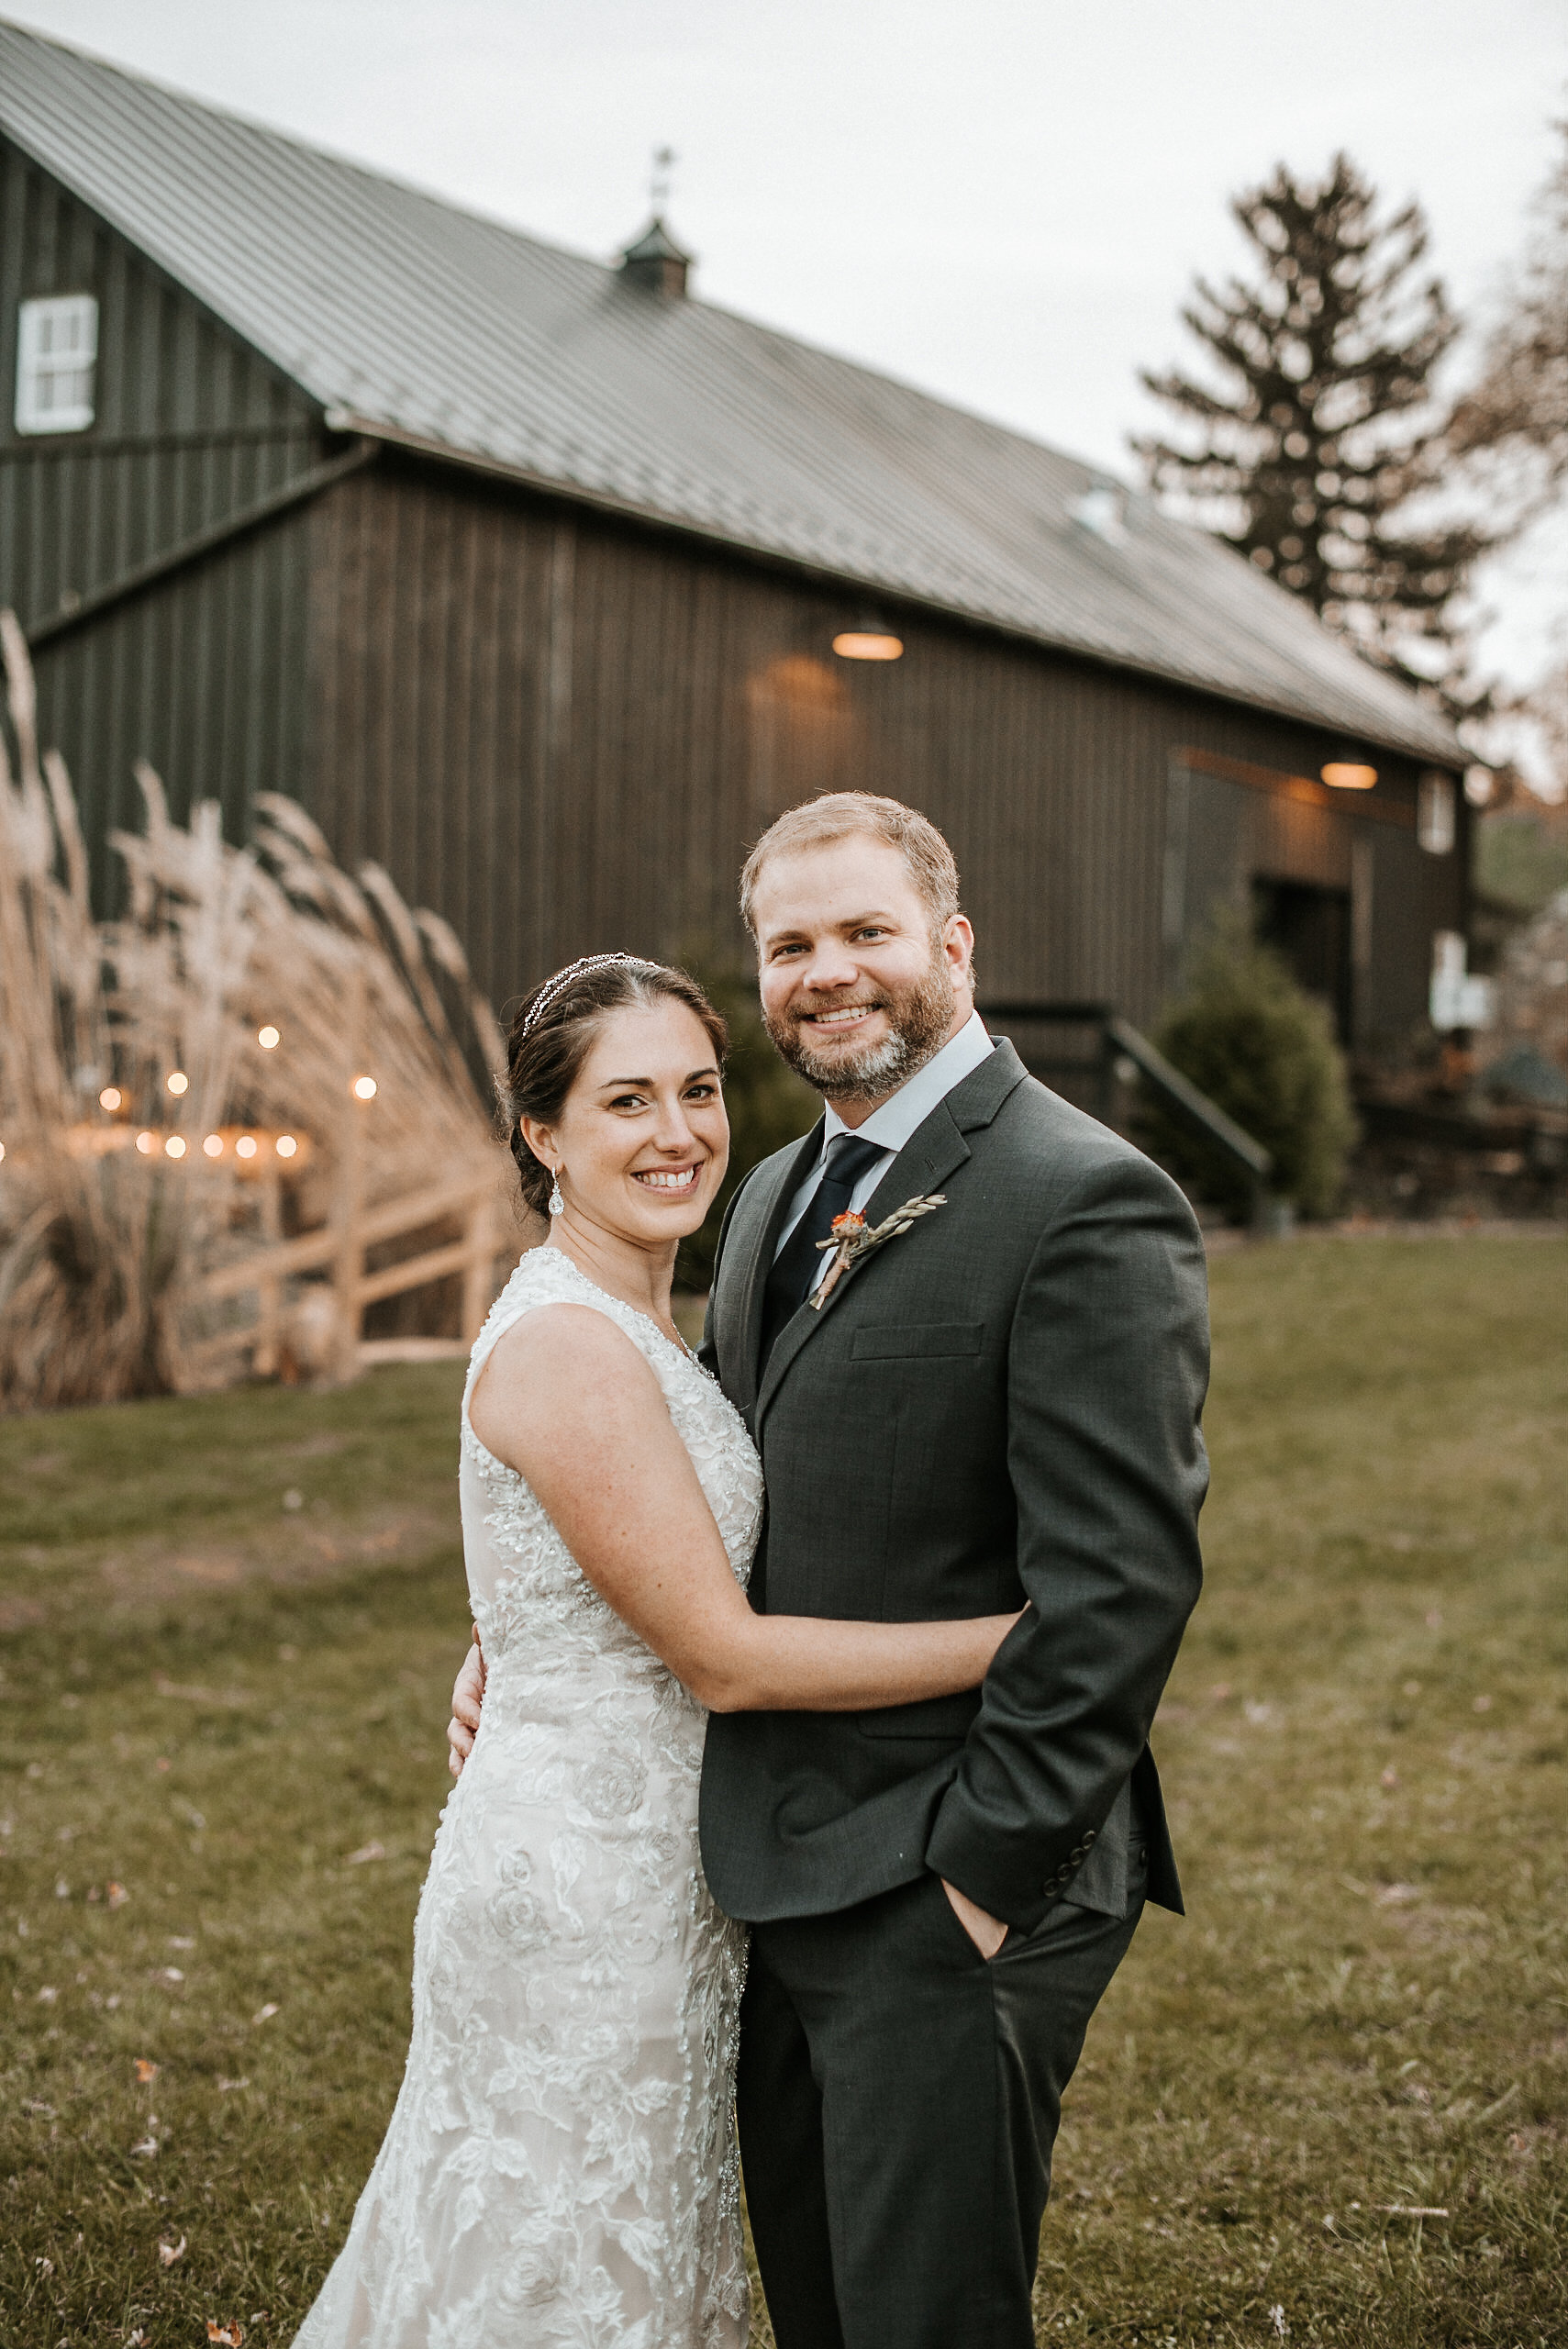 Bride and groom hugging in front of barn